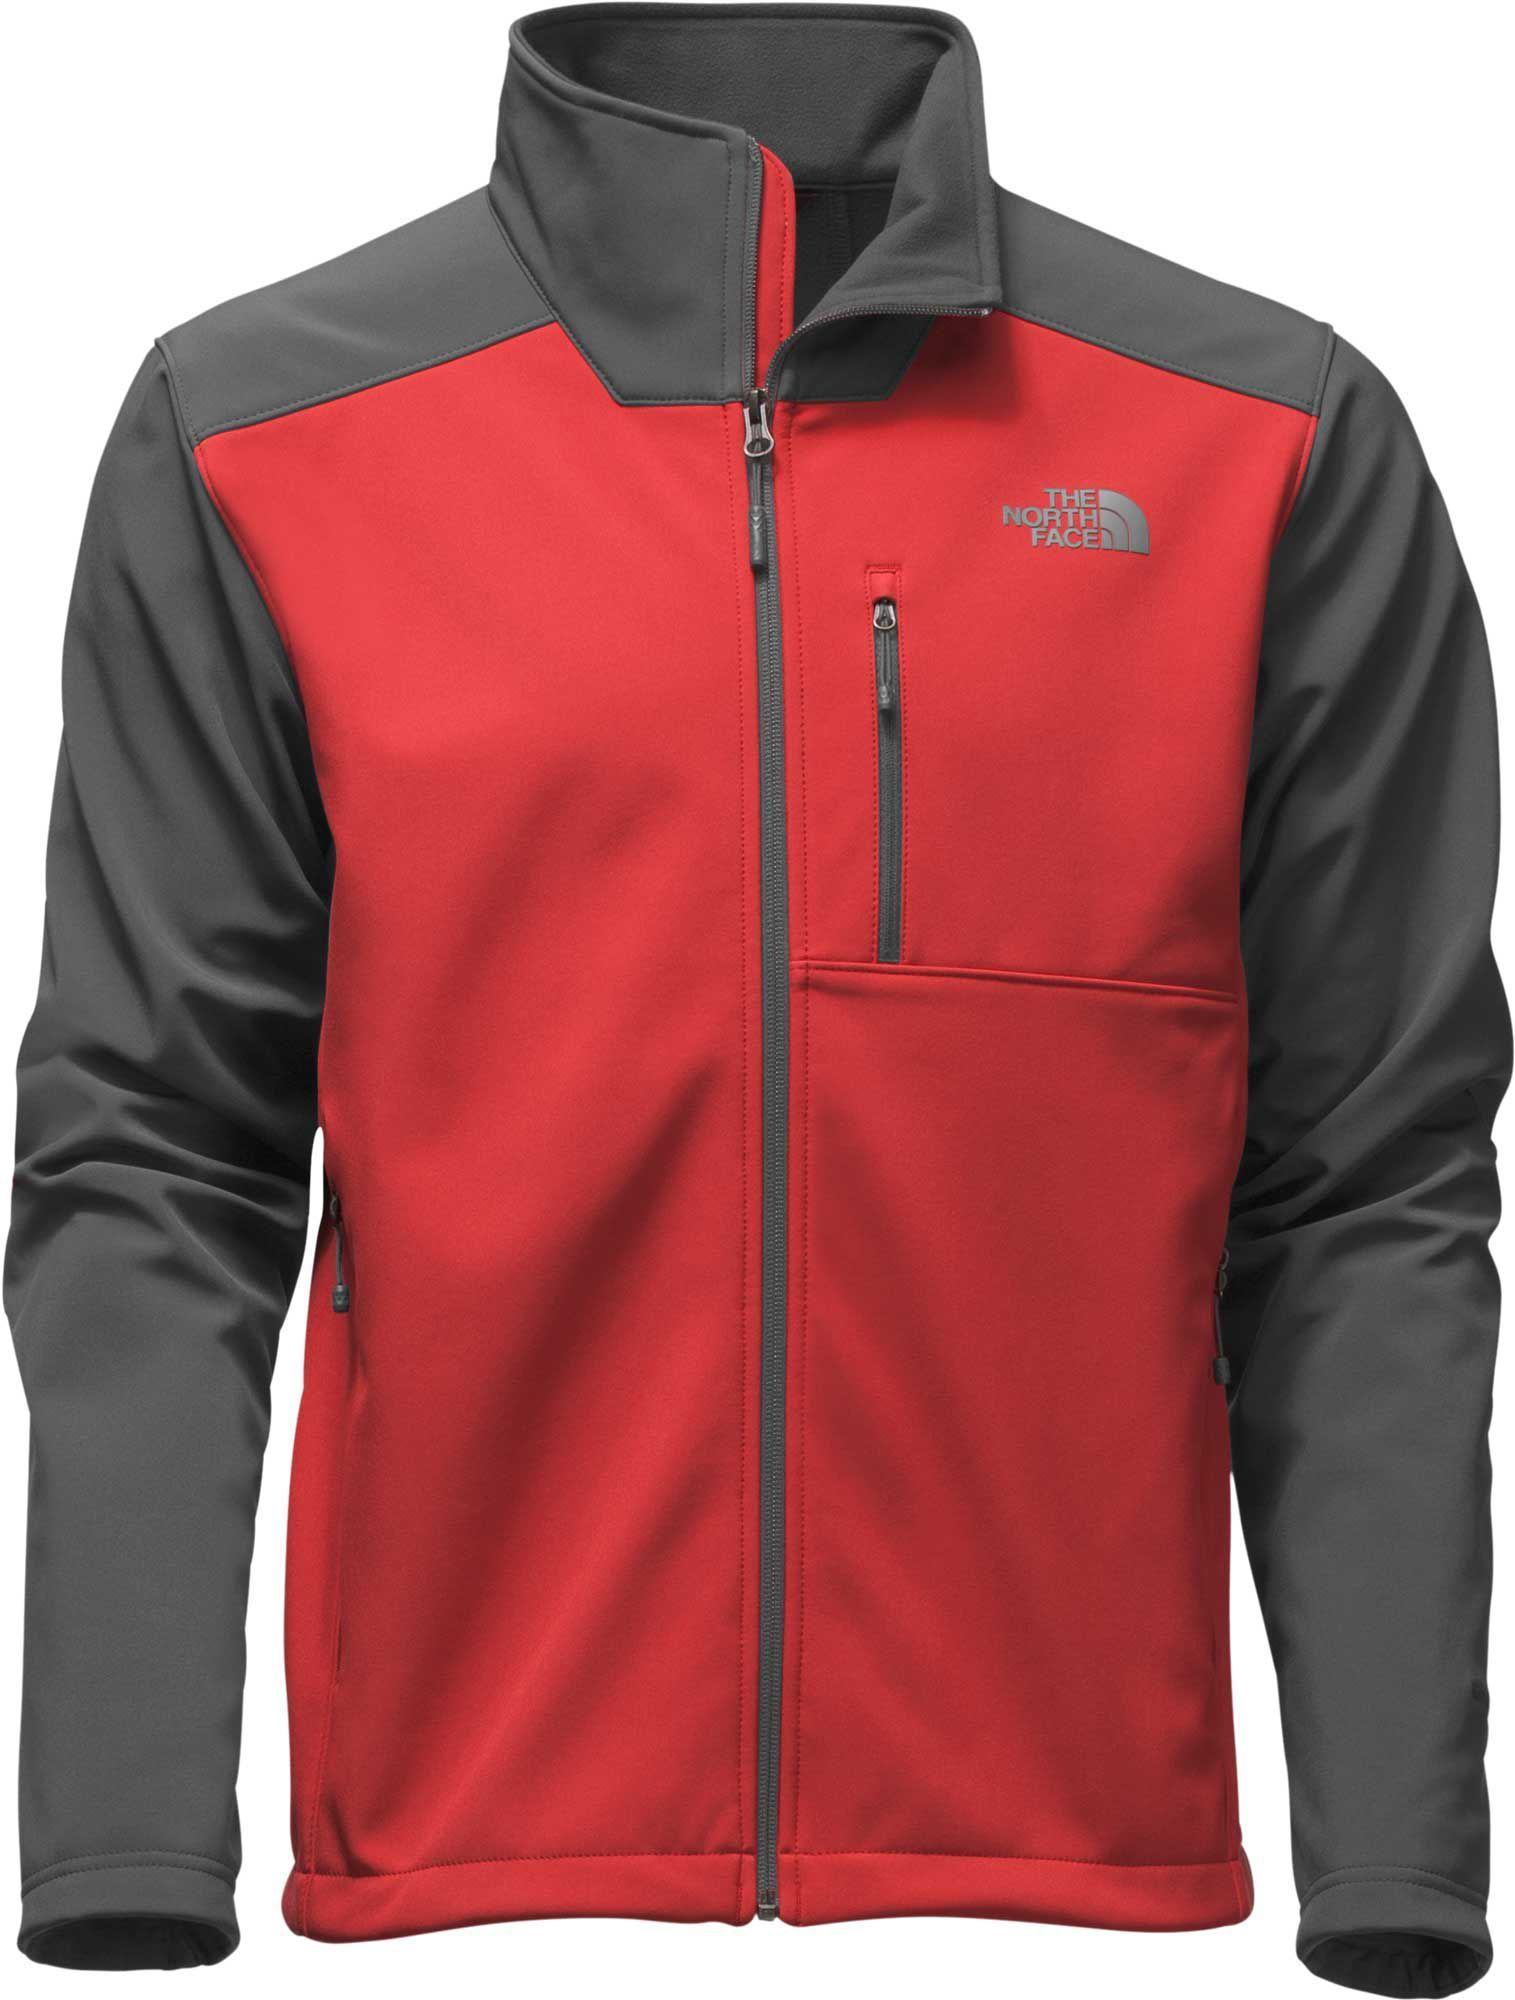 5a9fa21d4 The North Face Men's Apex Bionic 2 Soft Shell Jacket | Products ...